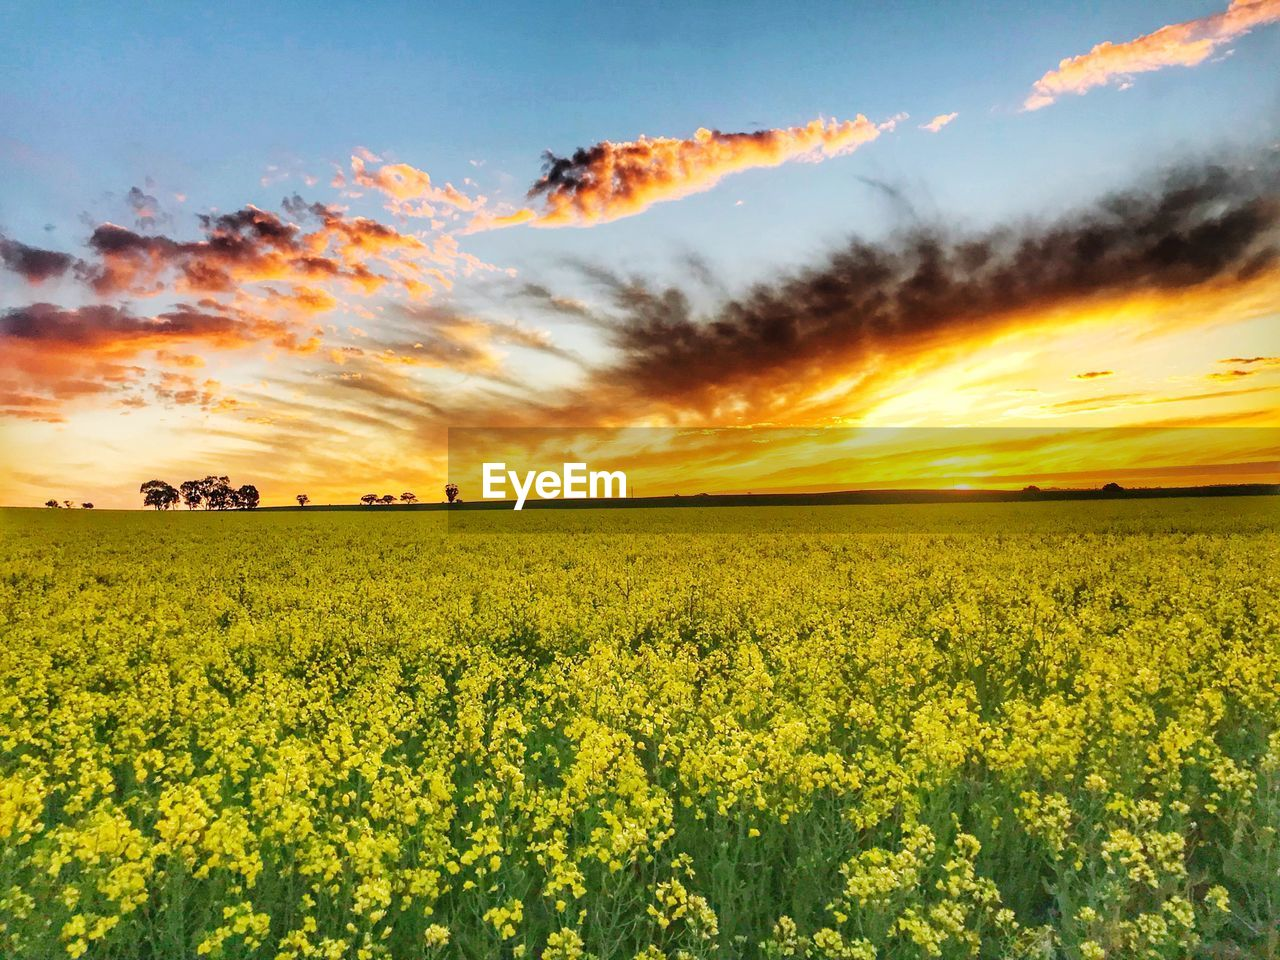 beauty in nature, yellow, scenics - nature, field, sky, land, sunset, flower, landscape, tranquil scene, agriculture, flowering plant, cloud - sky, environment, rural scene, plant, growth, tranquility, oilseed rape, idyllic, farm, no people, springtime, outdoors